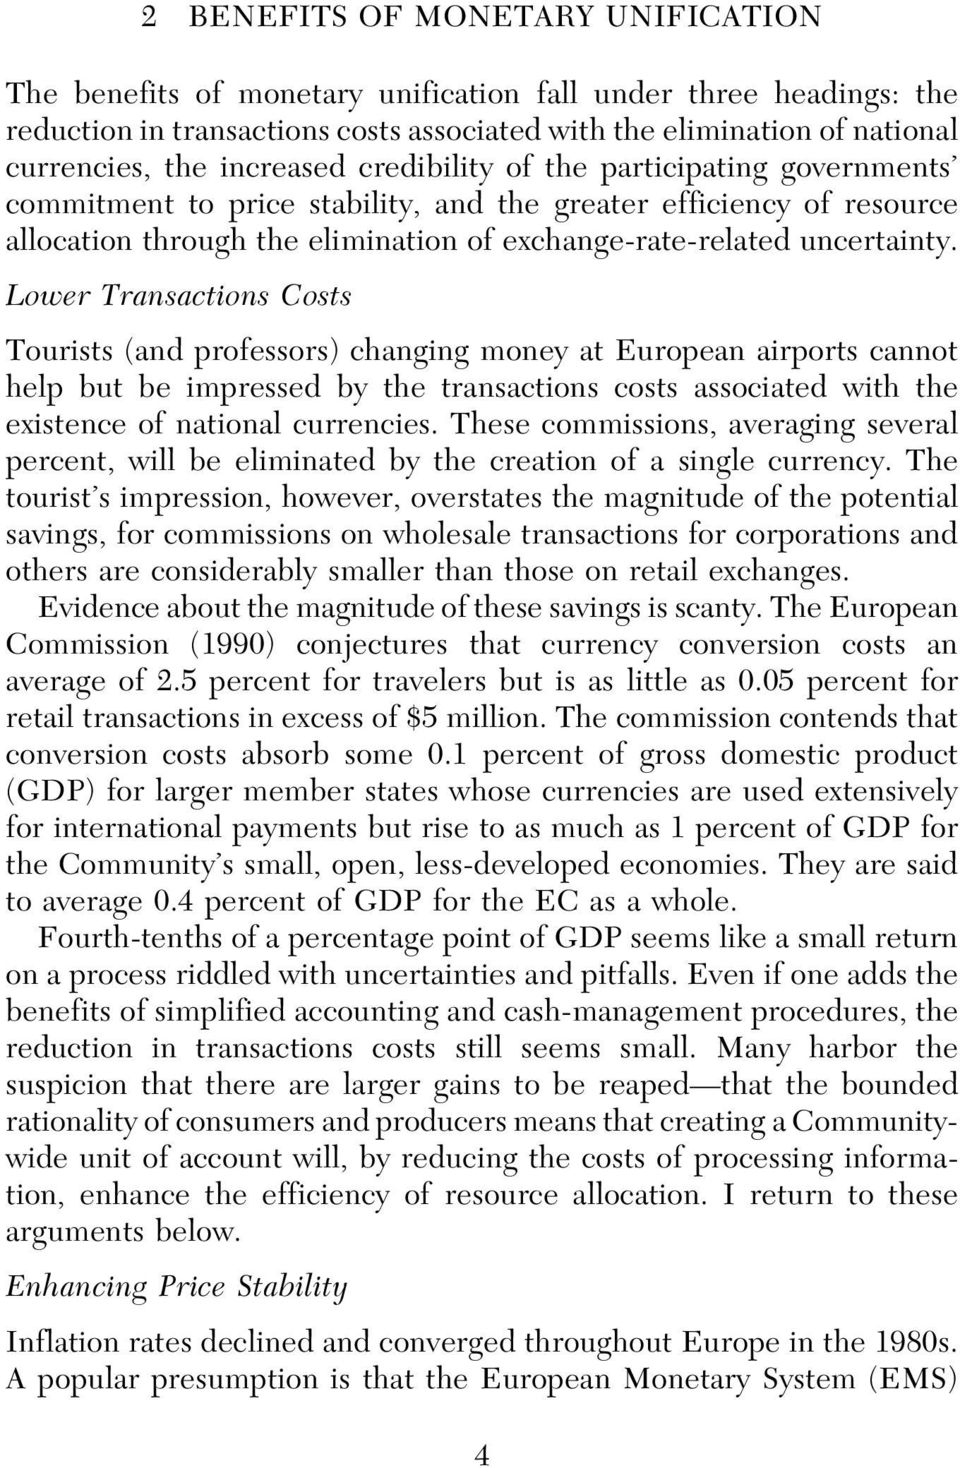 Lower Transactions Costs Tourists (and professors) changing money at European airports cannot help but be impressed by the transactions costs associated with the existence of national currencies.